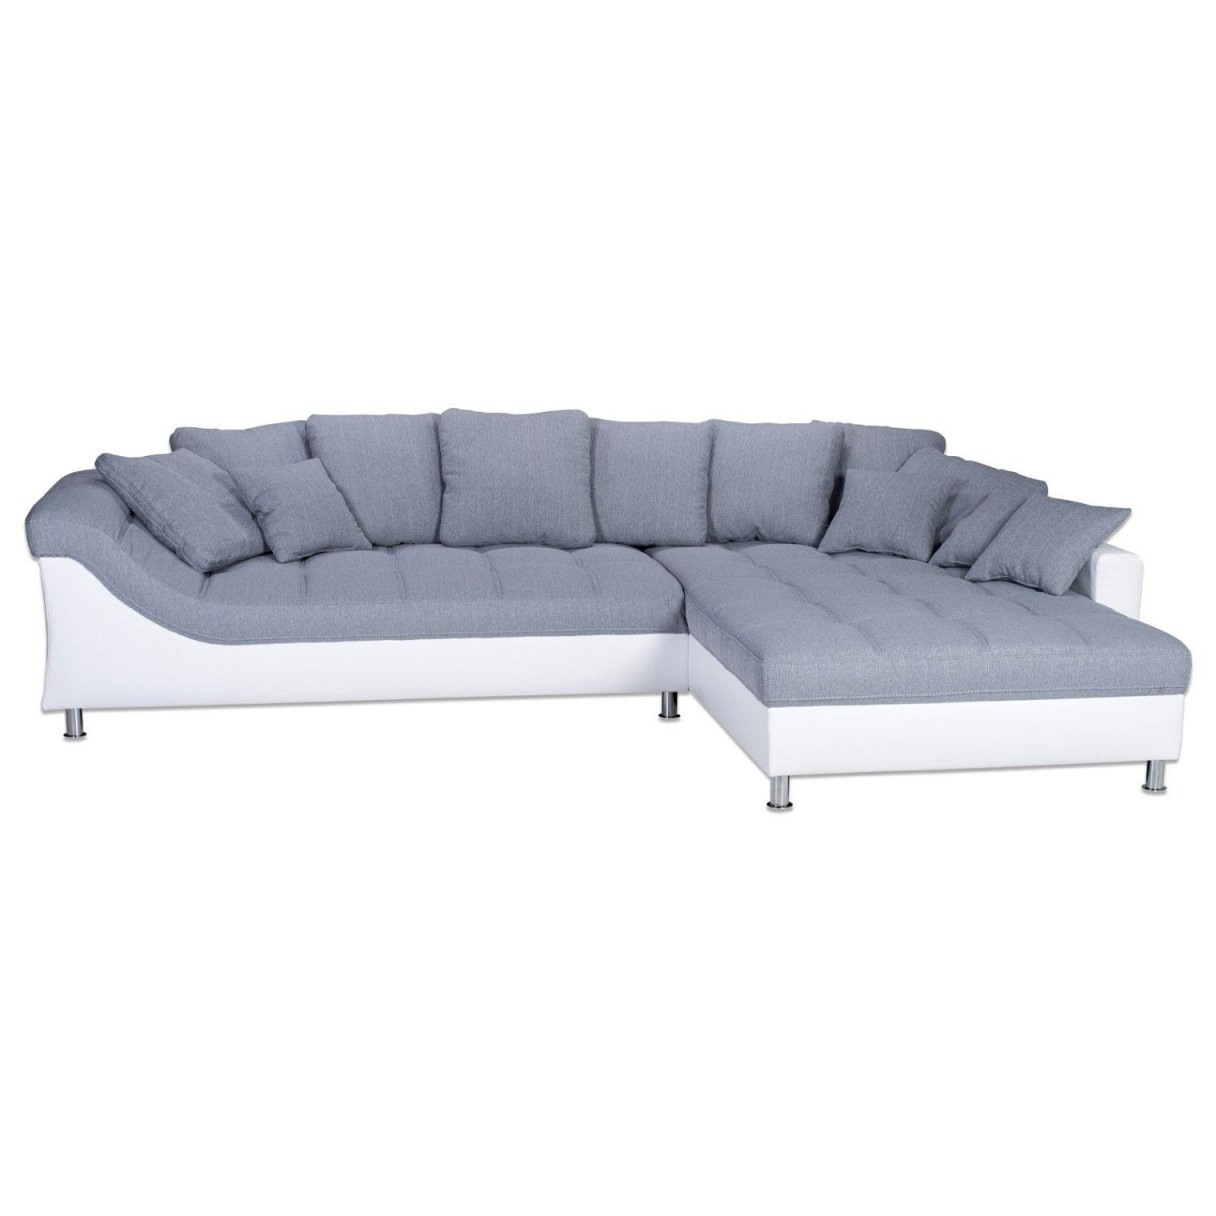 Marvelous Roller Funktionsecke  Couch Möbel  Furniture Home Decor von Ecksofa Mit Schlaffunktion Roller Photo